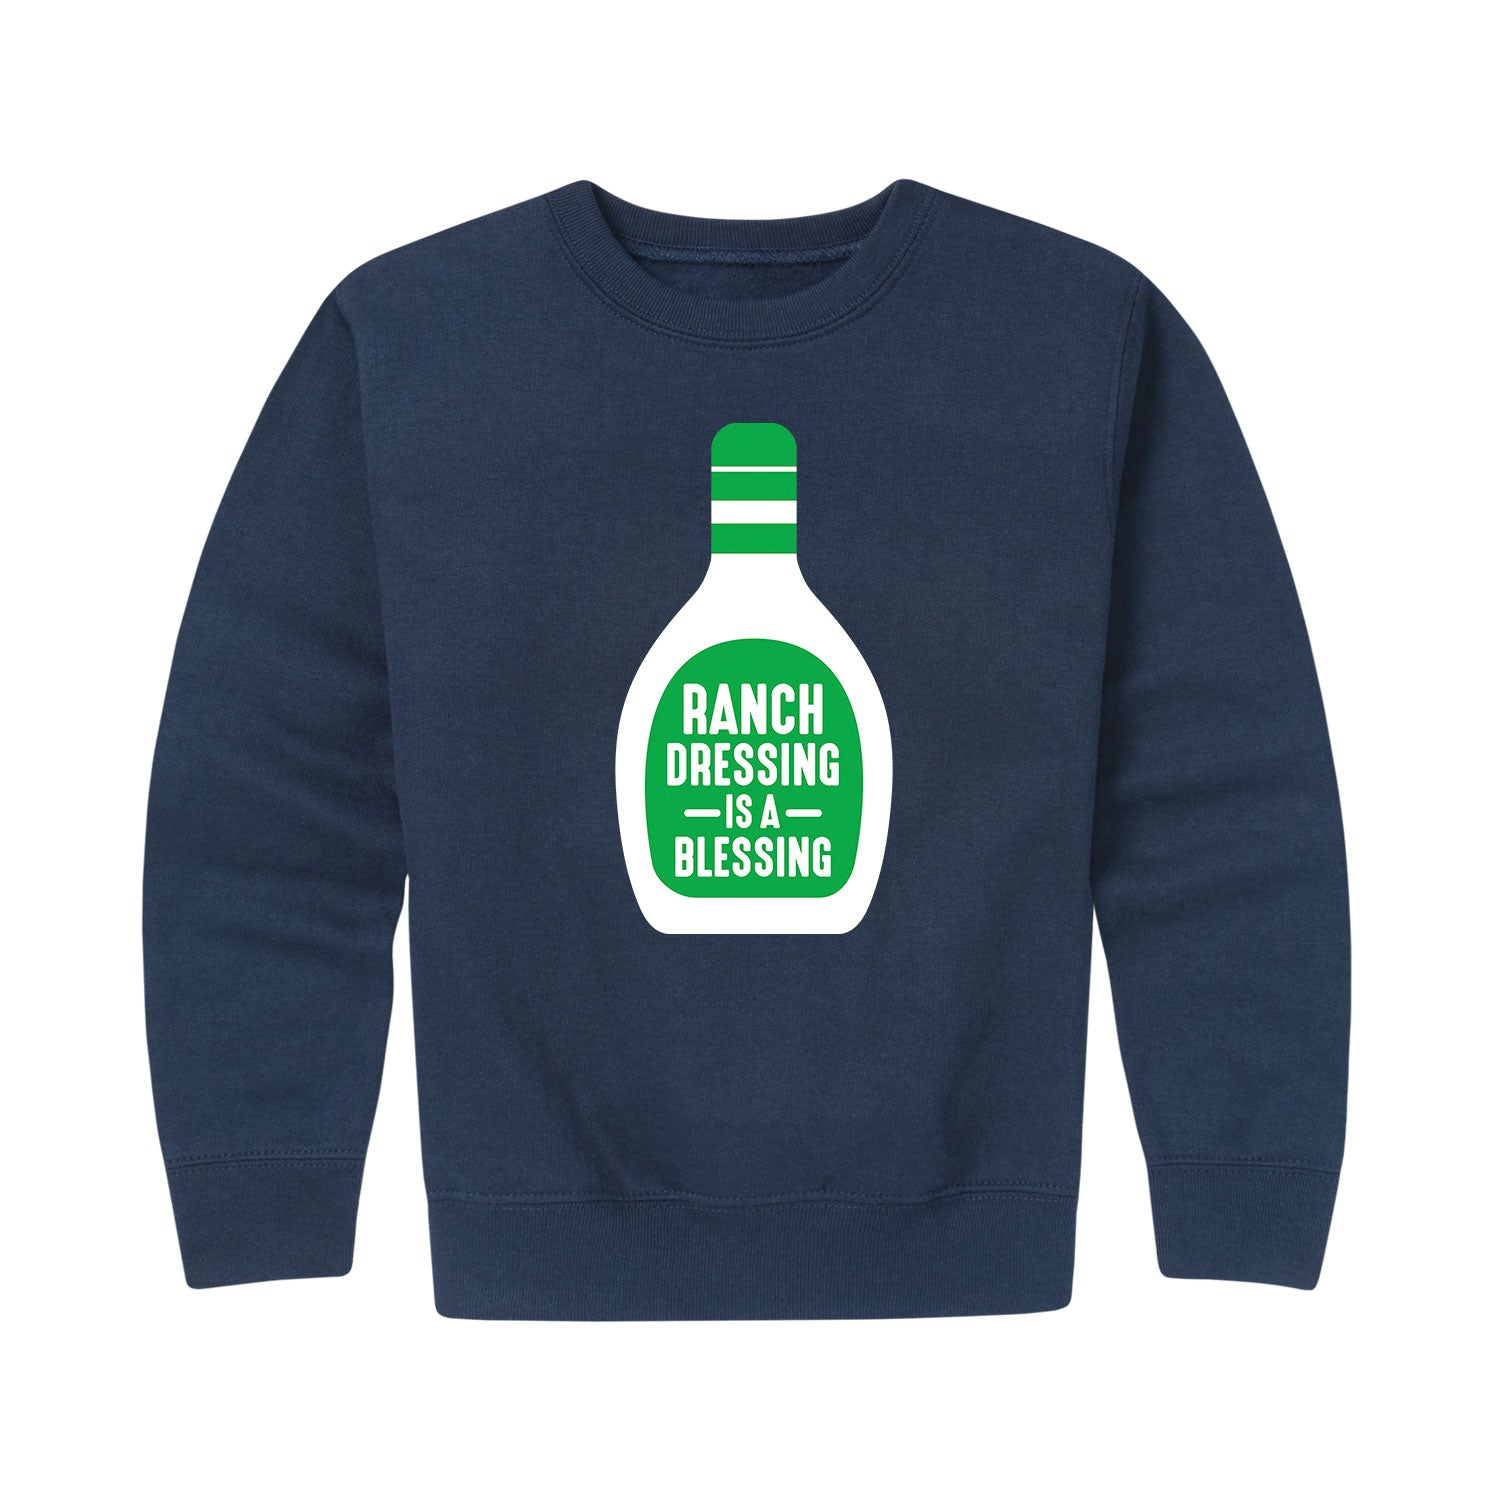 Ranch Dressing Is A Blessing - Youth & Toddler Crew Neck Fleece